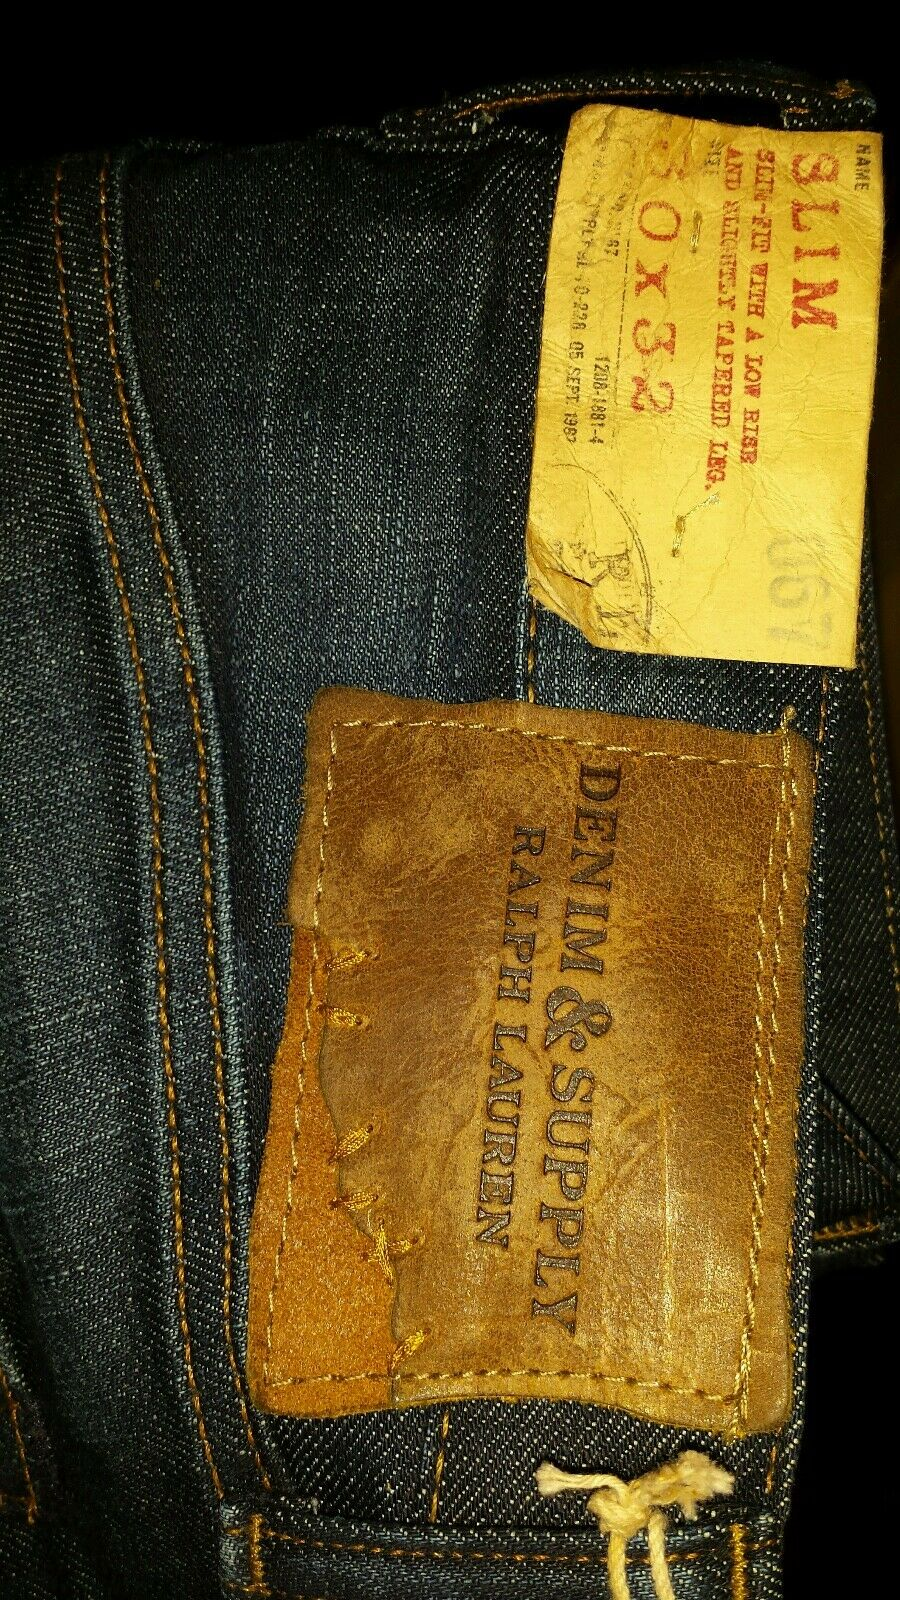 RALPH LAUREN DENIM TAPERED blueE JEANS MENS SLIM 30x32 Orig.